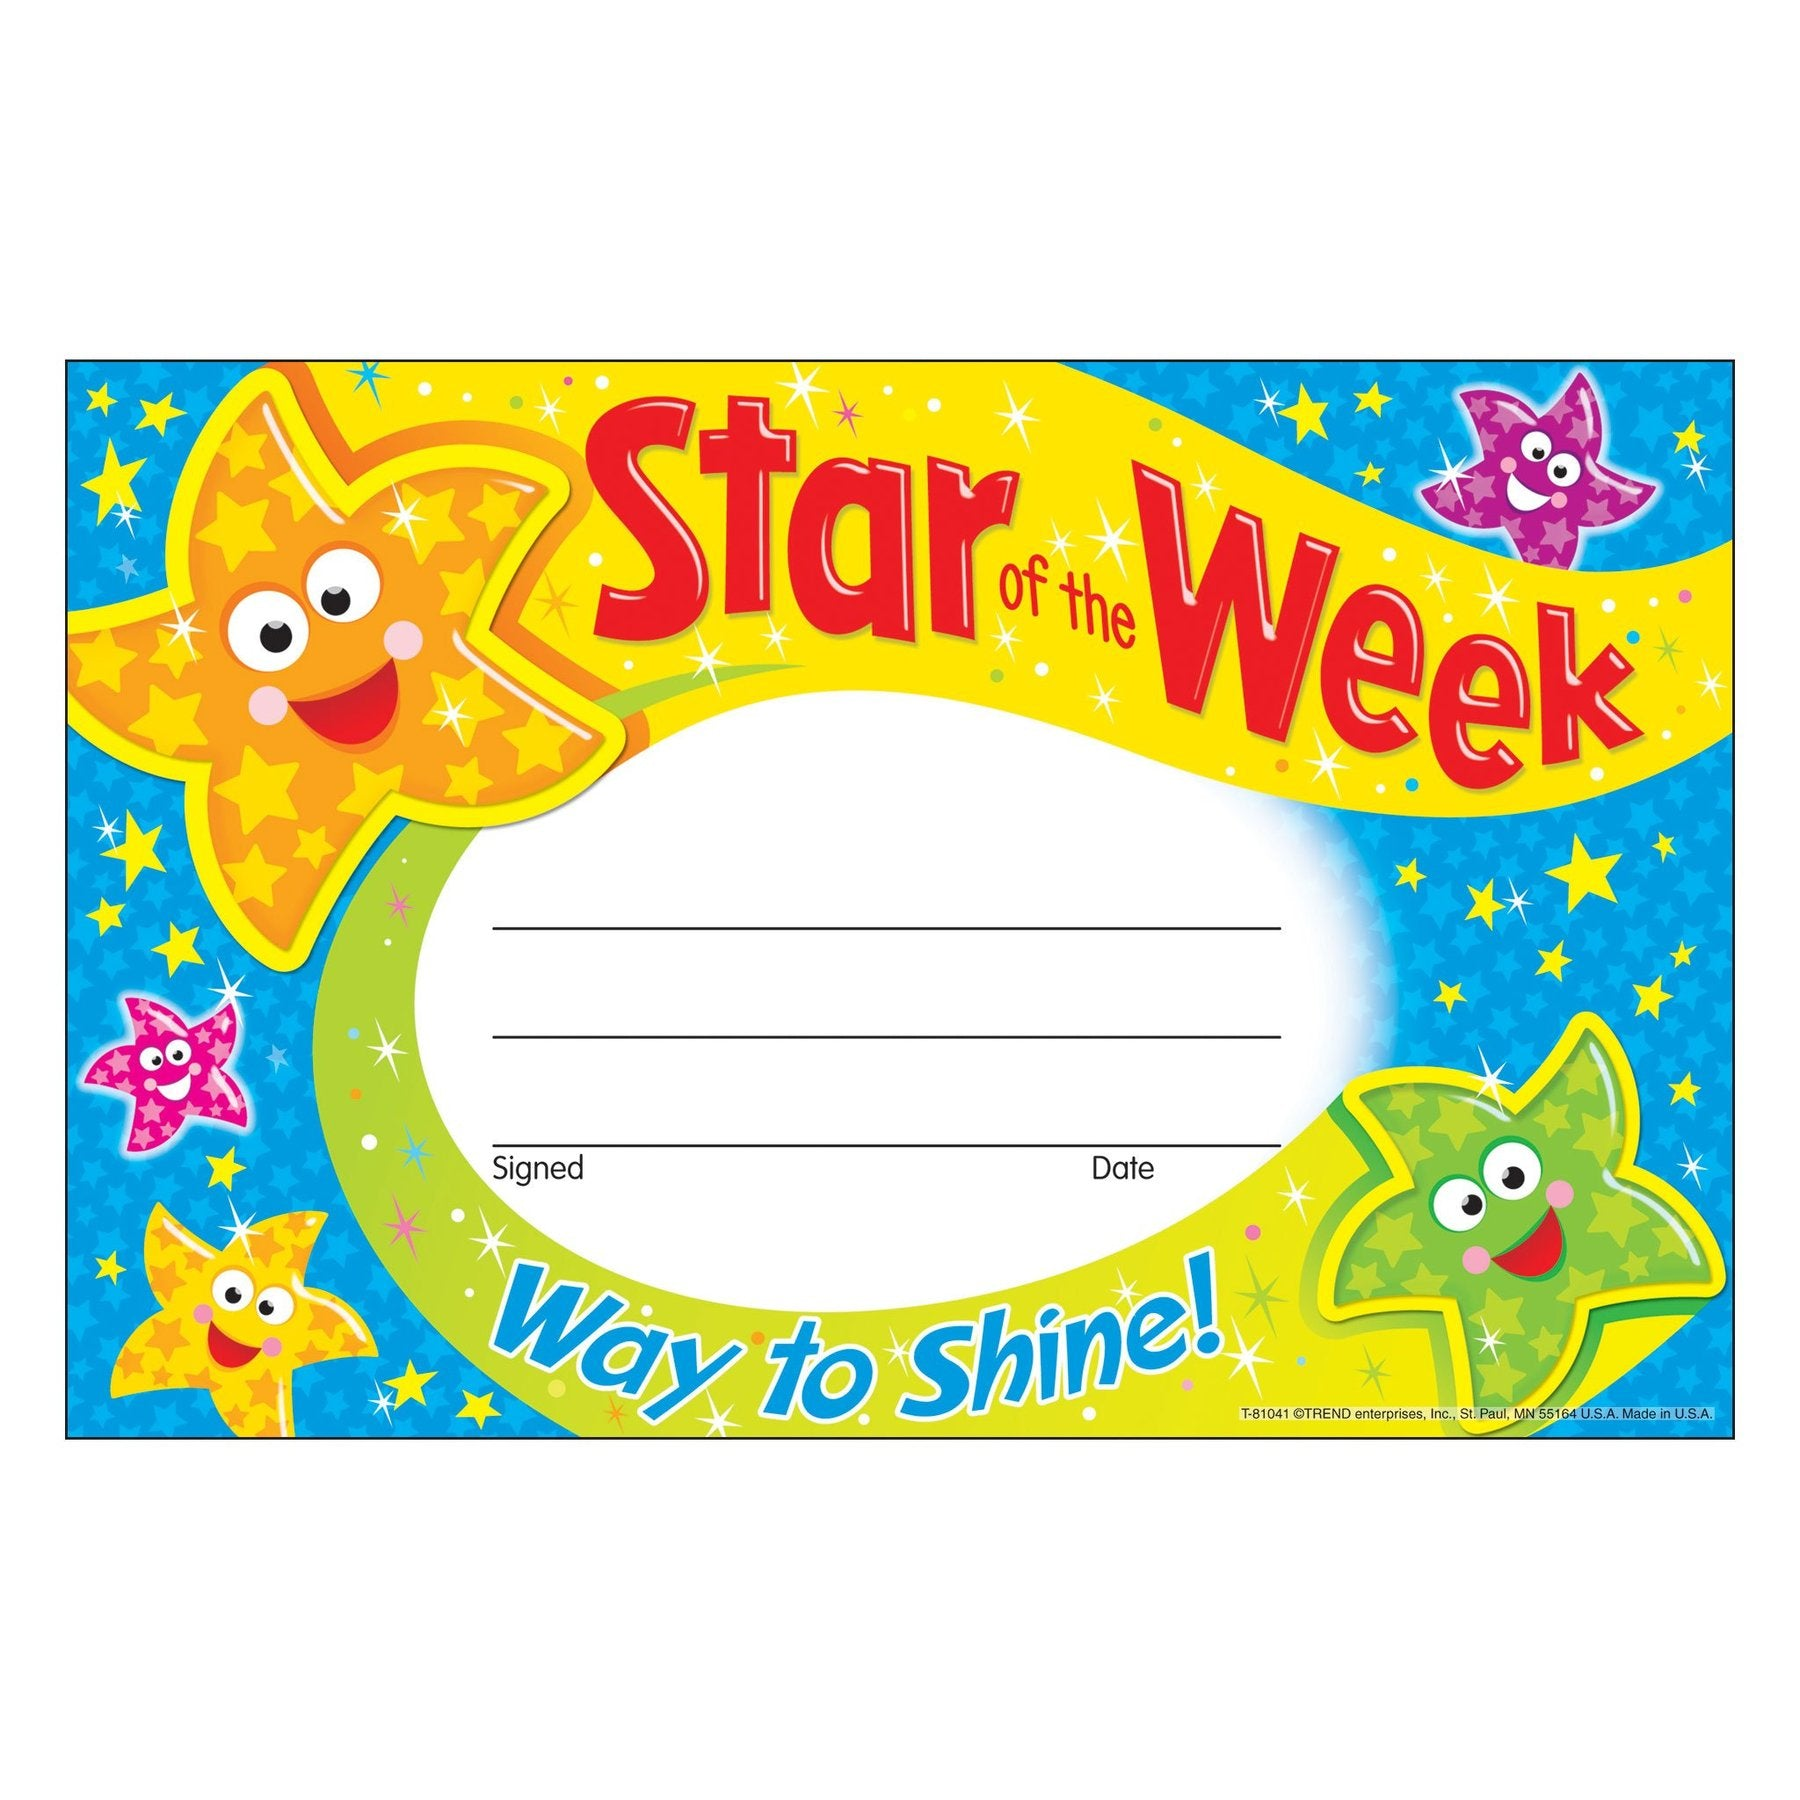 Star of the Week—Way to Shine! Recognition Awards